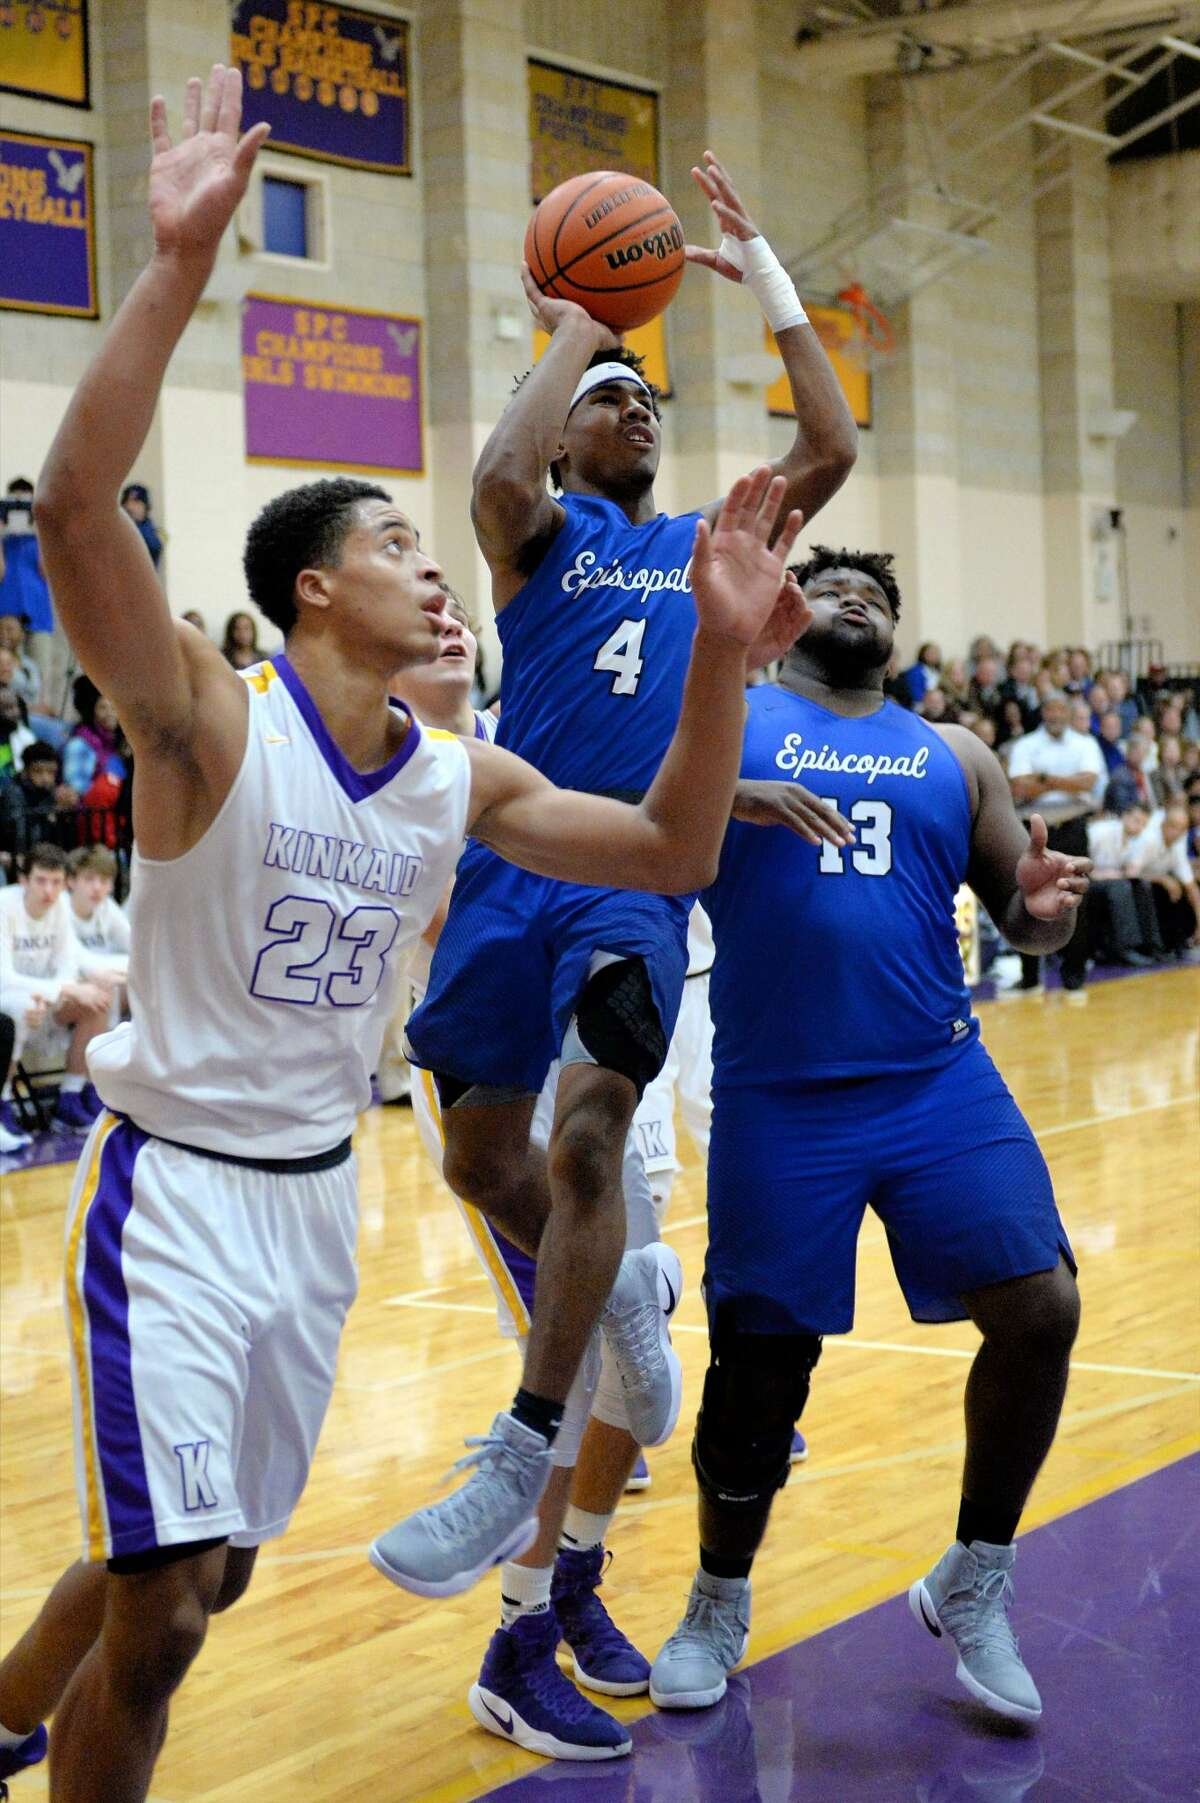 Jaylen Waddle (4) of Episcopal attempts a jump shot during the first half of a boys basketball game between the Episcopal Knights and the Kinkaid Falcons on Tuesday January 27, 2017 at Kinkaid High School, Houston, TX.